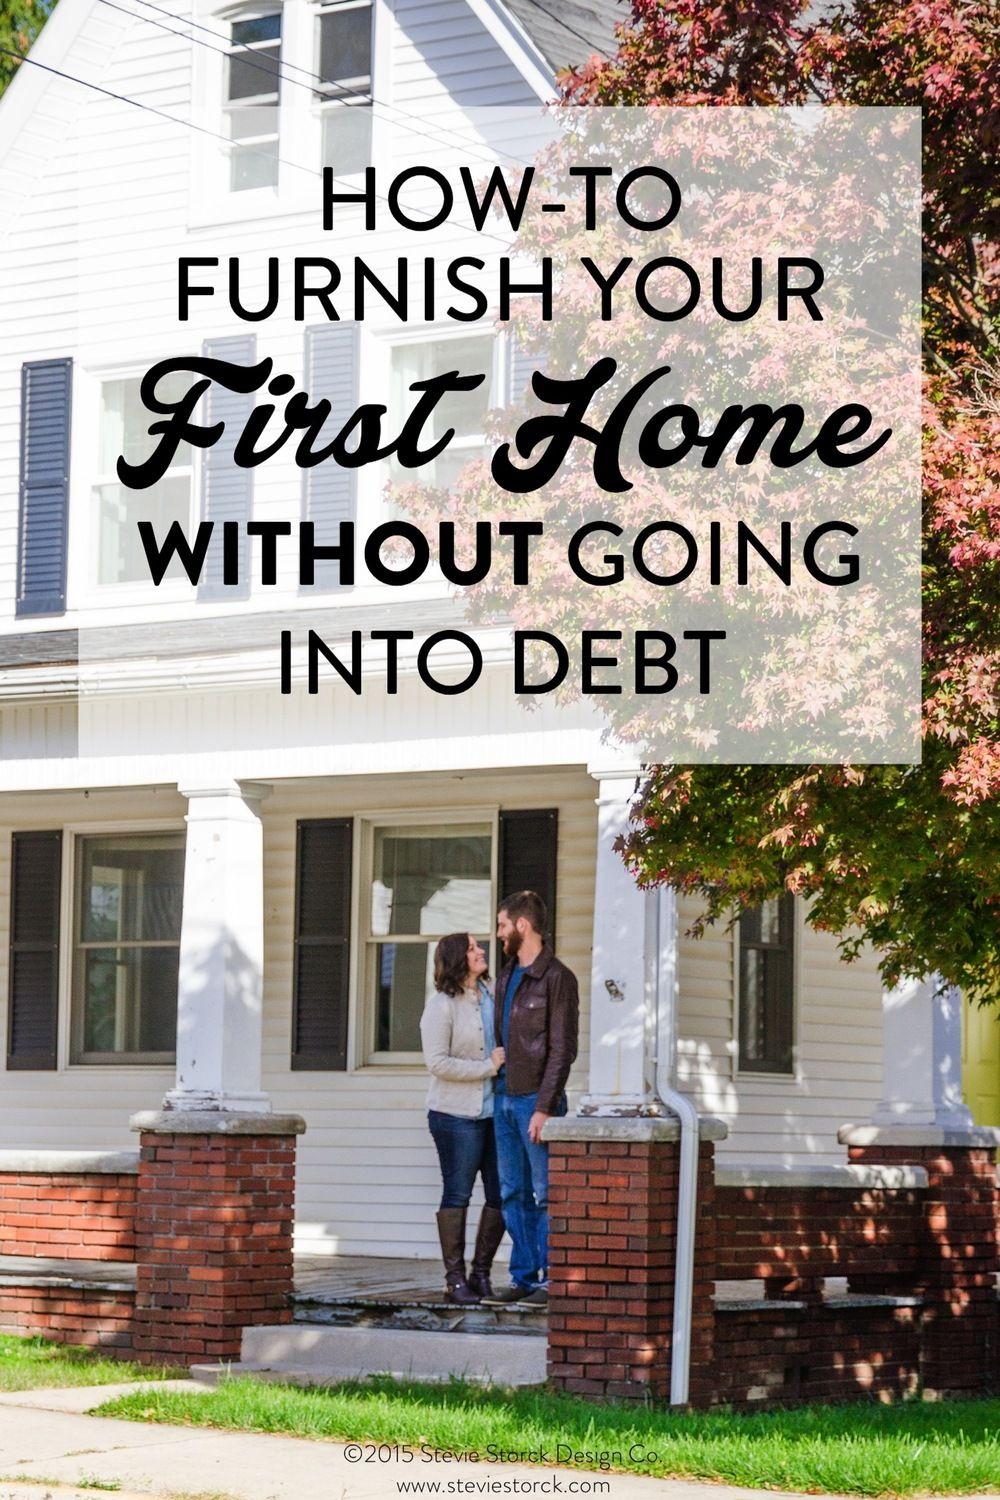 How To Furnish House With Modern Furniture: How To Furnish Your First Home WITHOUT Going Into Debt